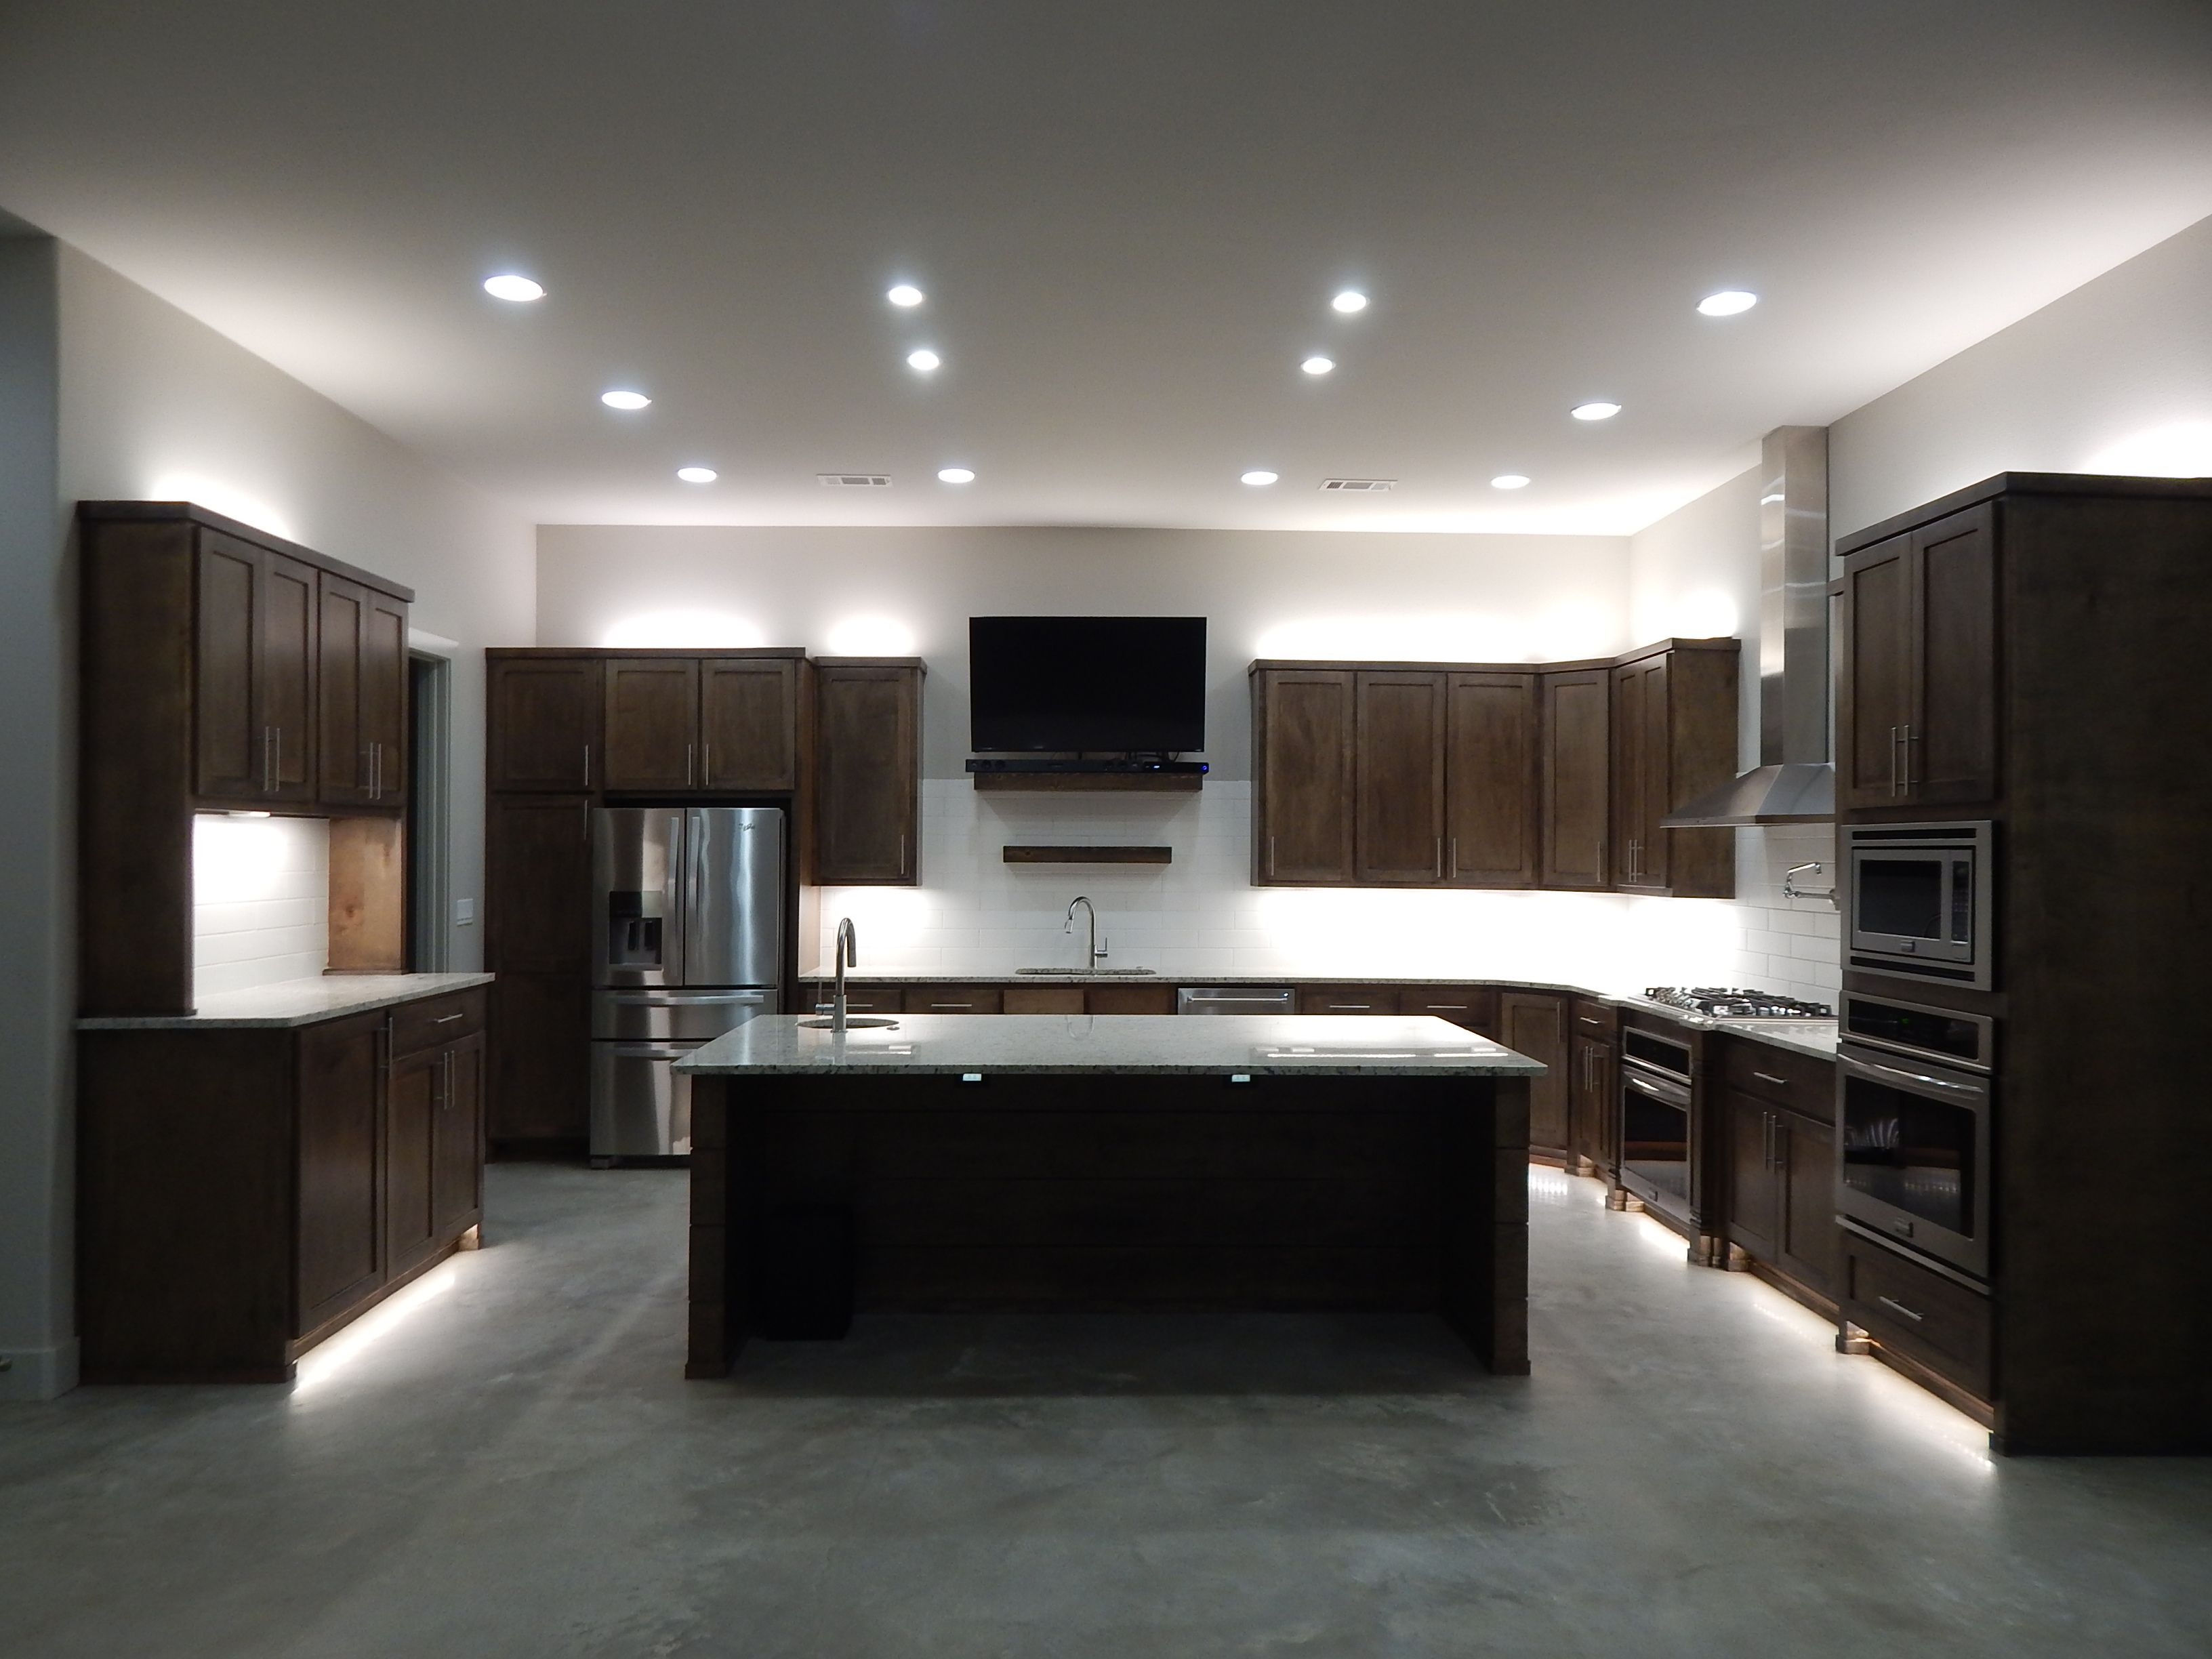 Cabinets Stained Maple Color Is Weathered Teak From Sherwin Williams Paint Agreeable Gray Walls Ceiling Trim